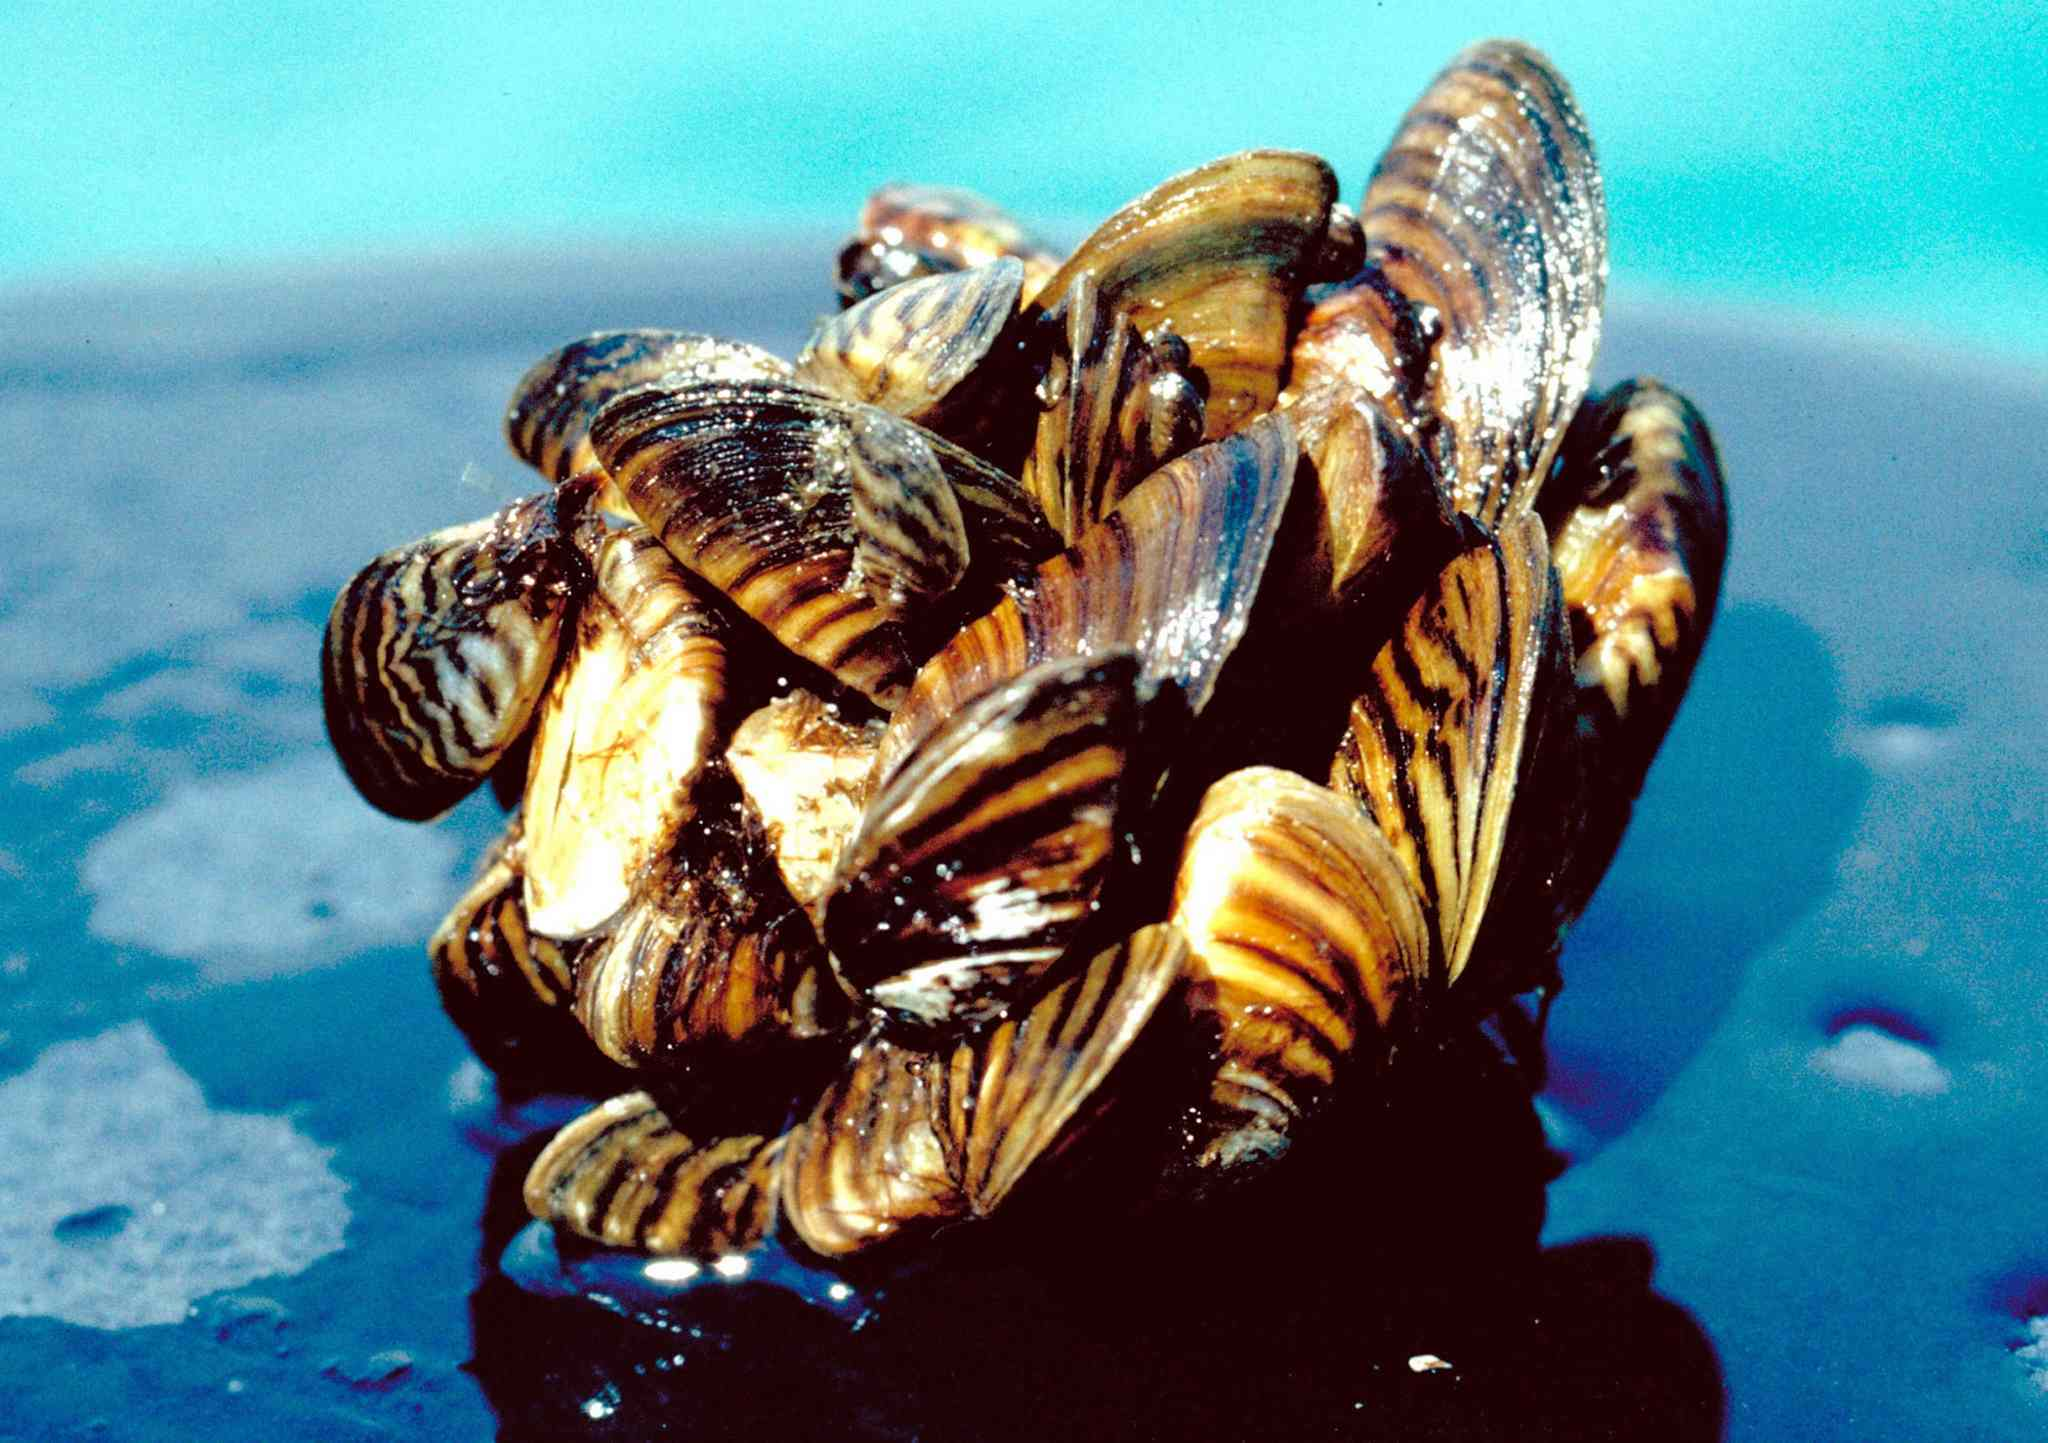 A group of zebra mussels taken from Lake Erie.